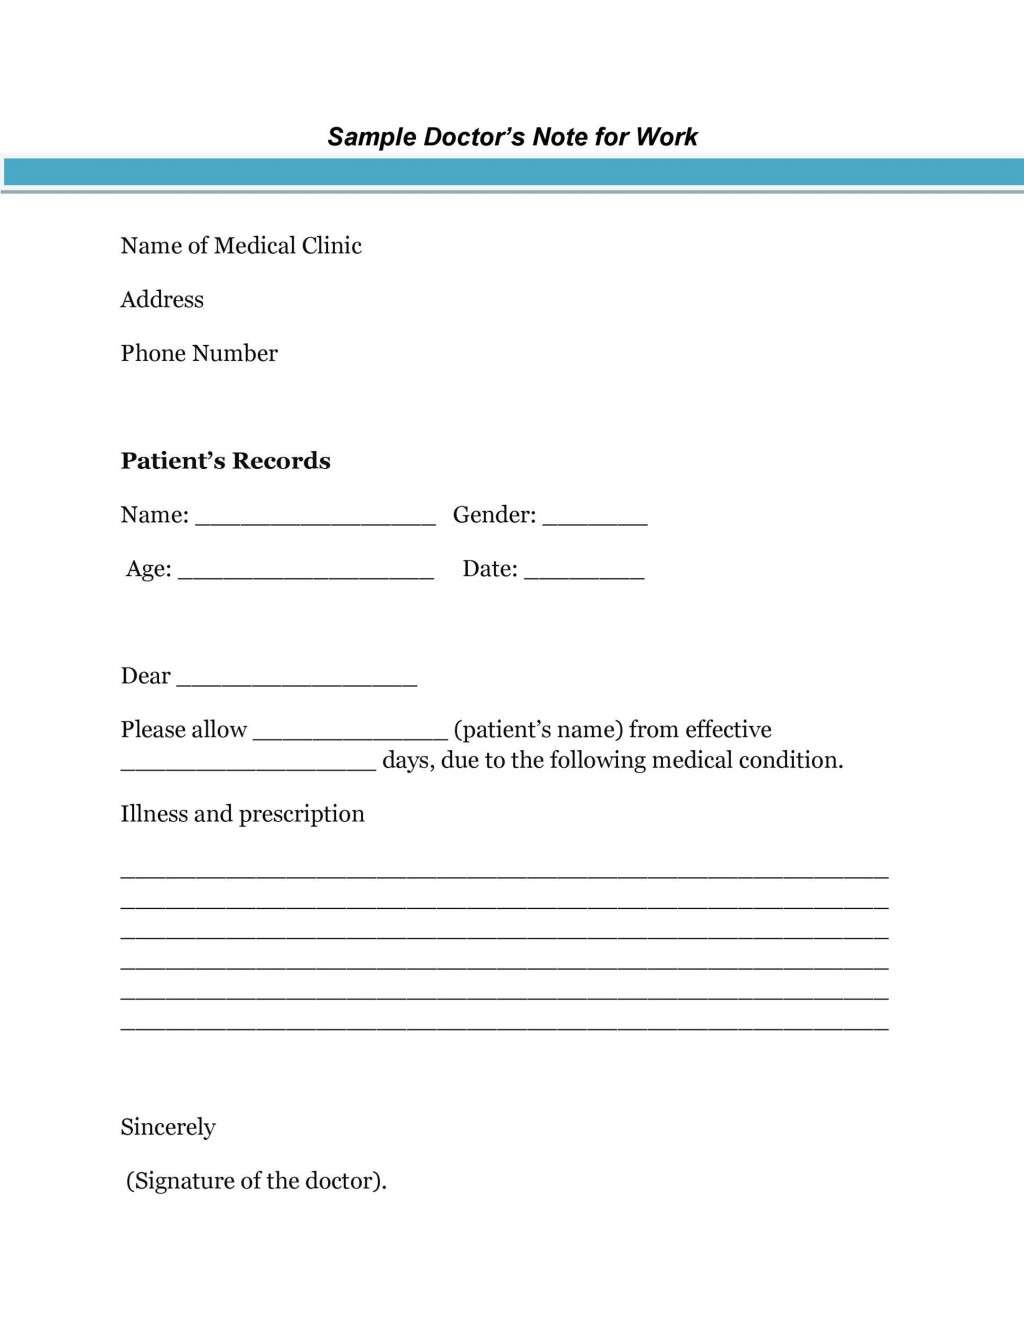 007 Fearsome Doctor Note Template Pdf Idea  Free Sample For WorkLarge